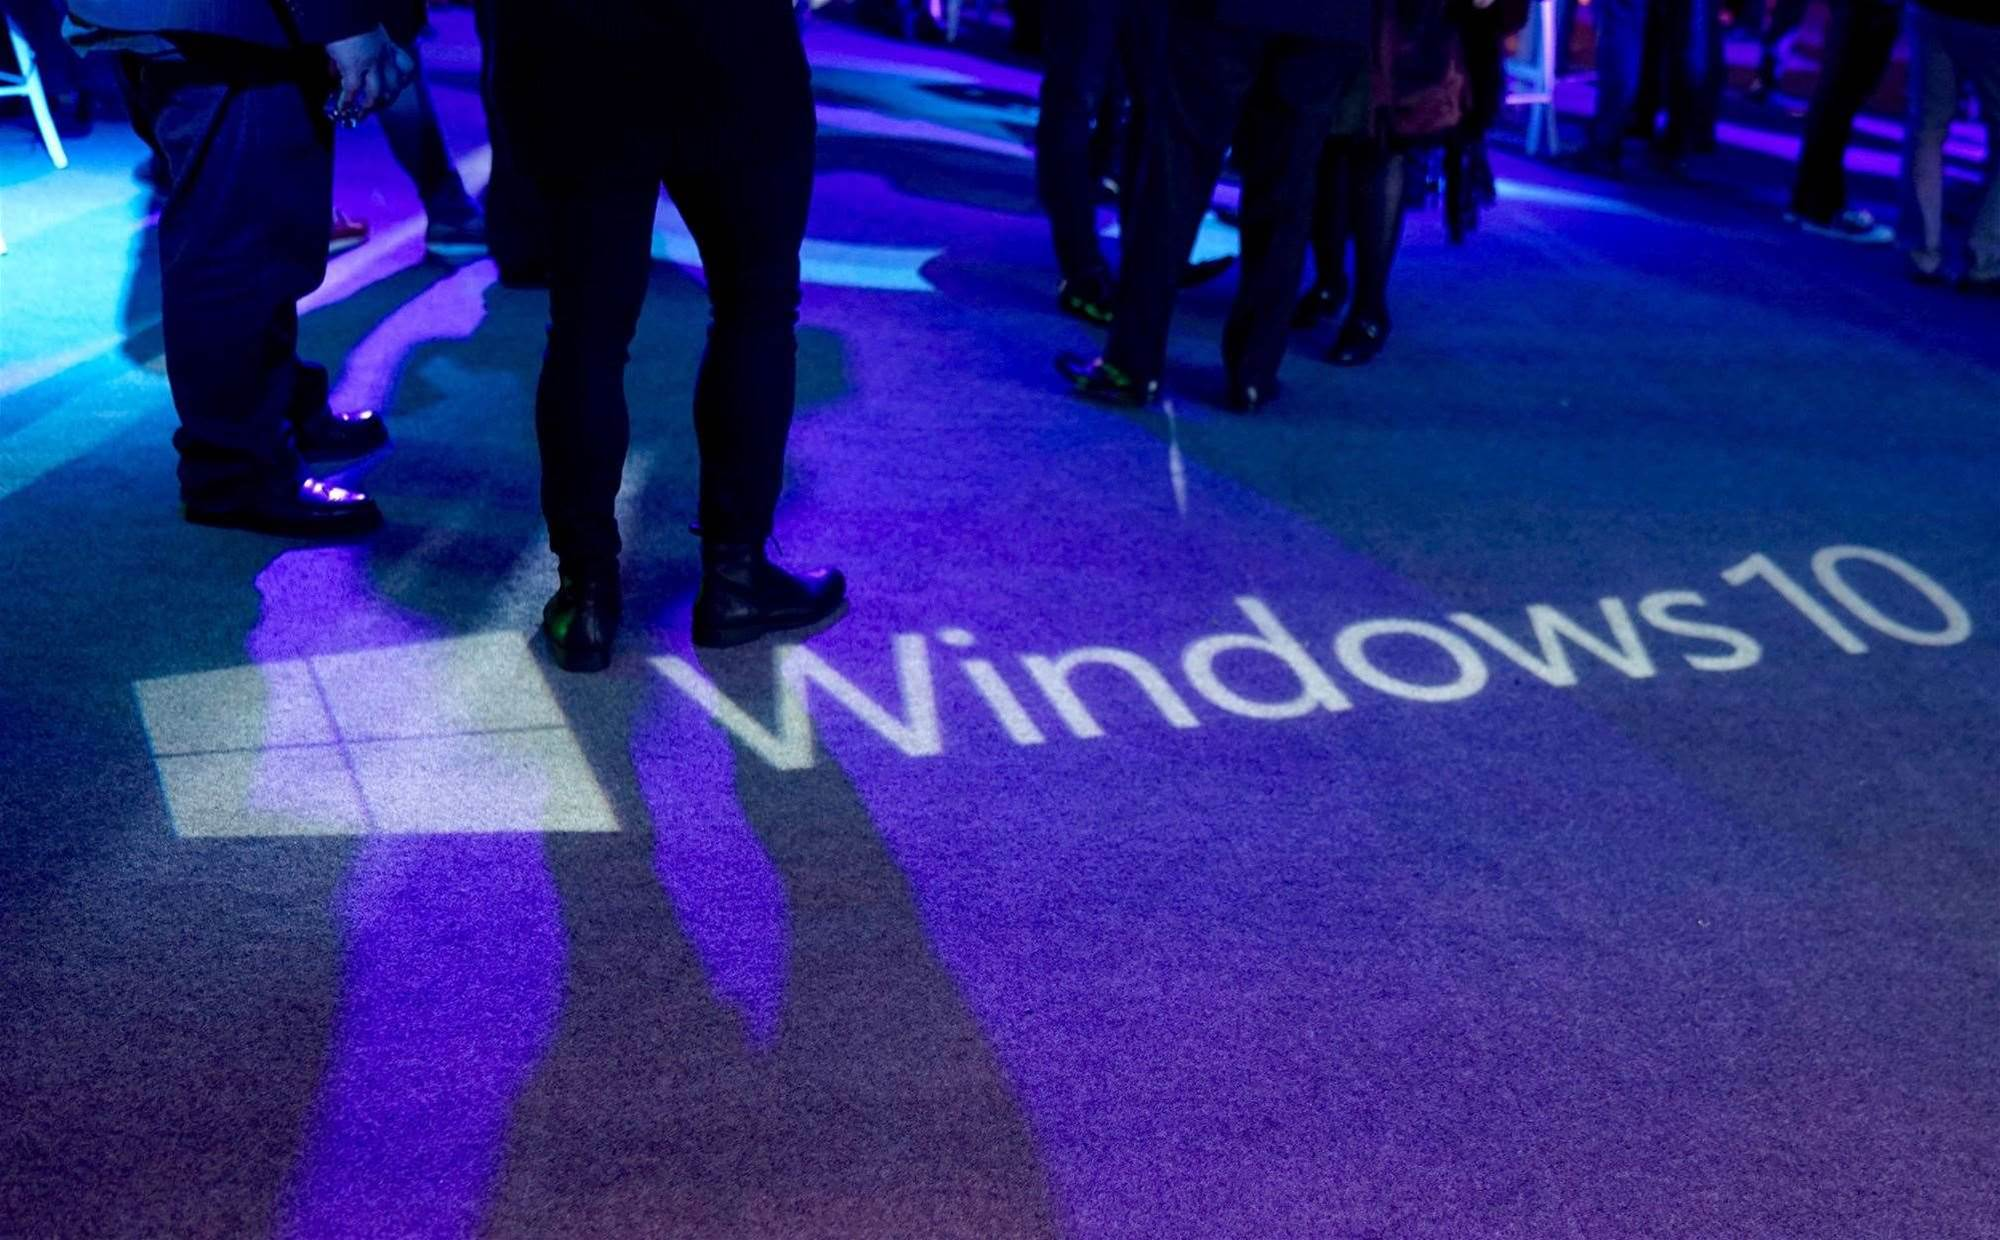 Microsoft faces $600m lawsuit over forced Windows 10 upgrade